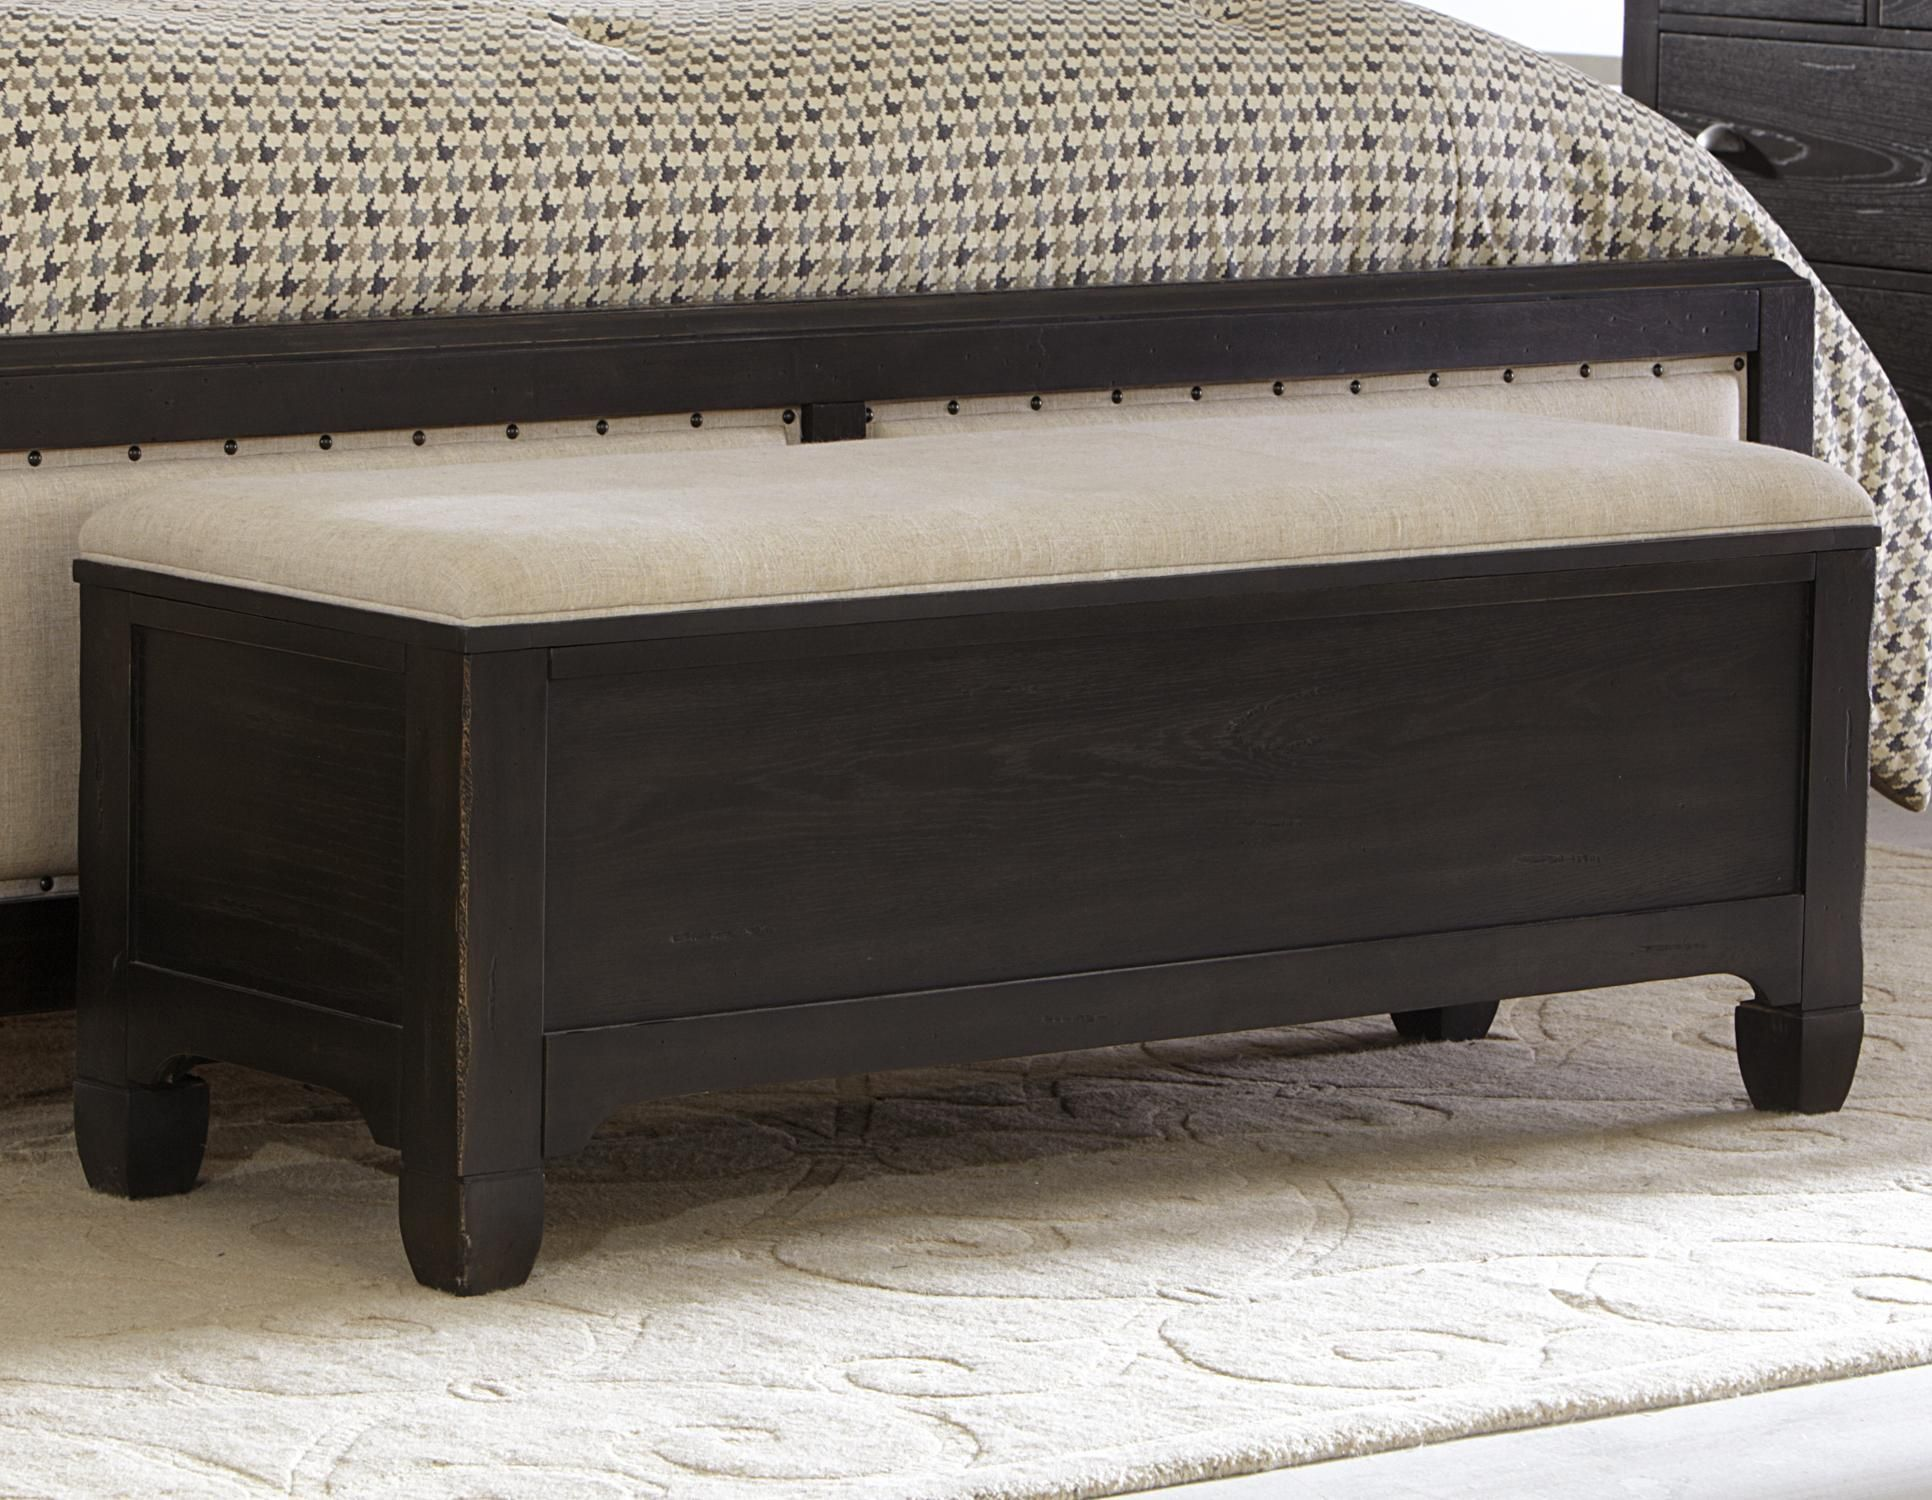 Bed Bench with Upholstered Top Seat | Great Room | Pinterest | Bed ...